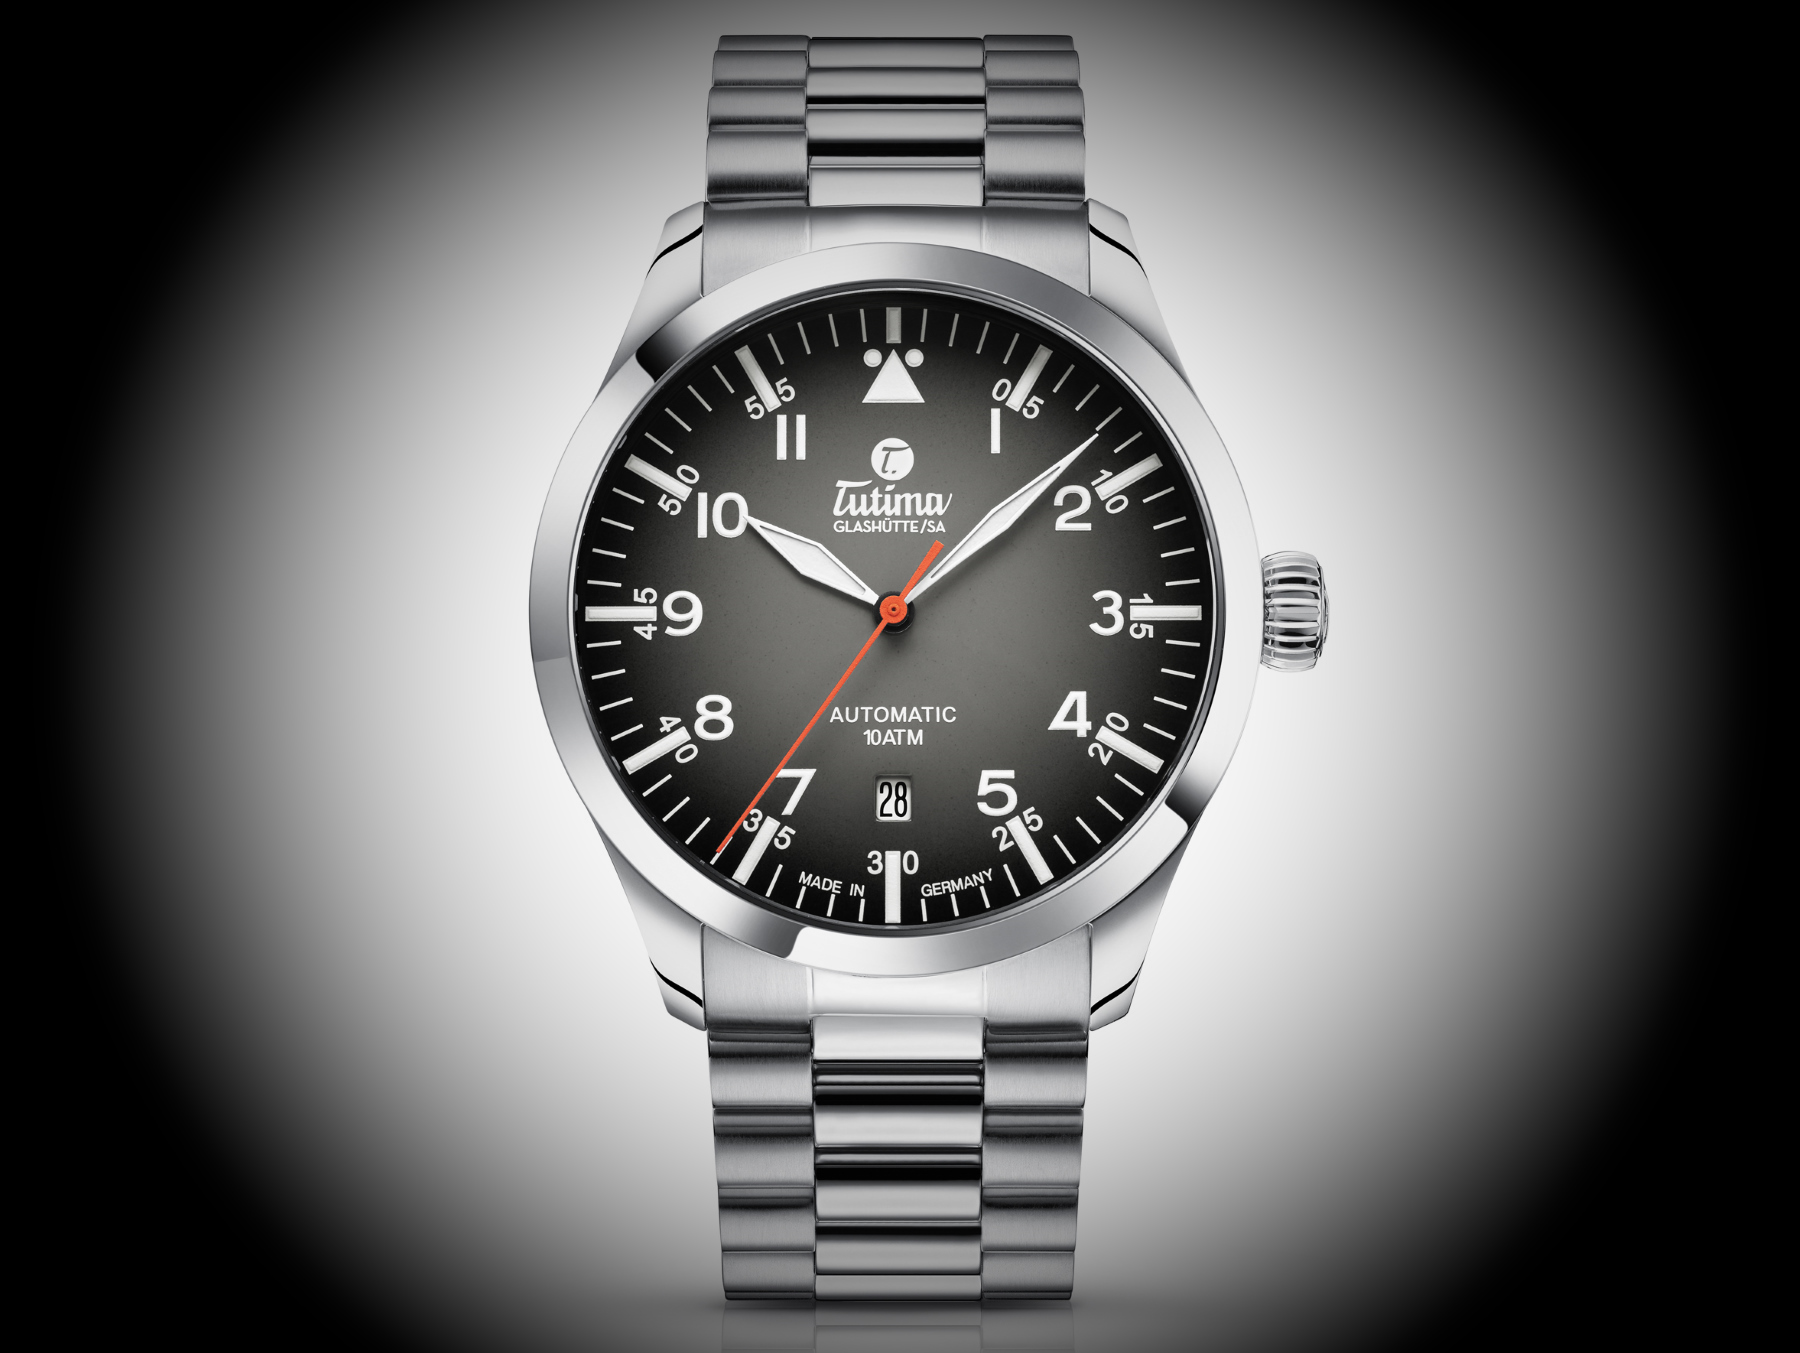 tutima_slate_grey_steeel_-_europa_star_watch_magazine_2020